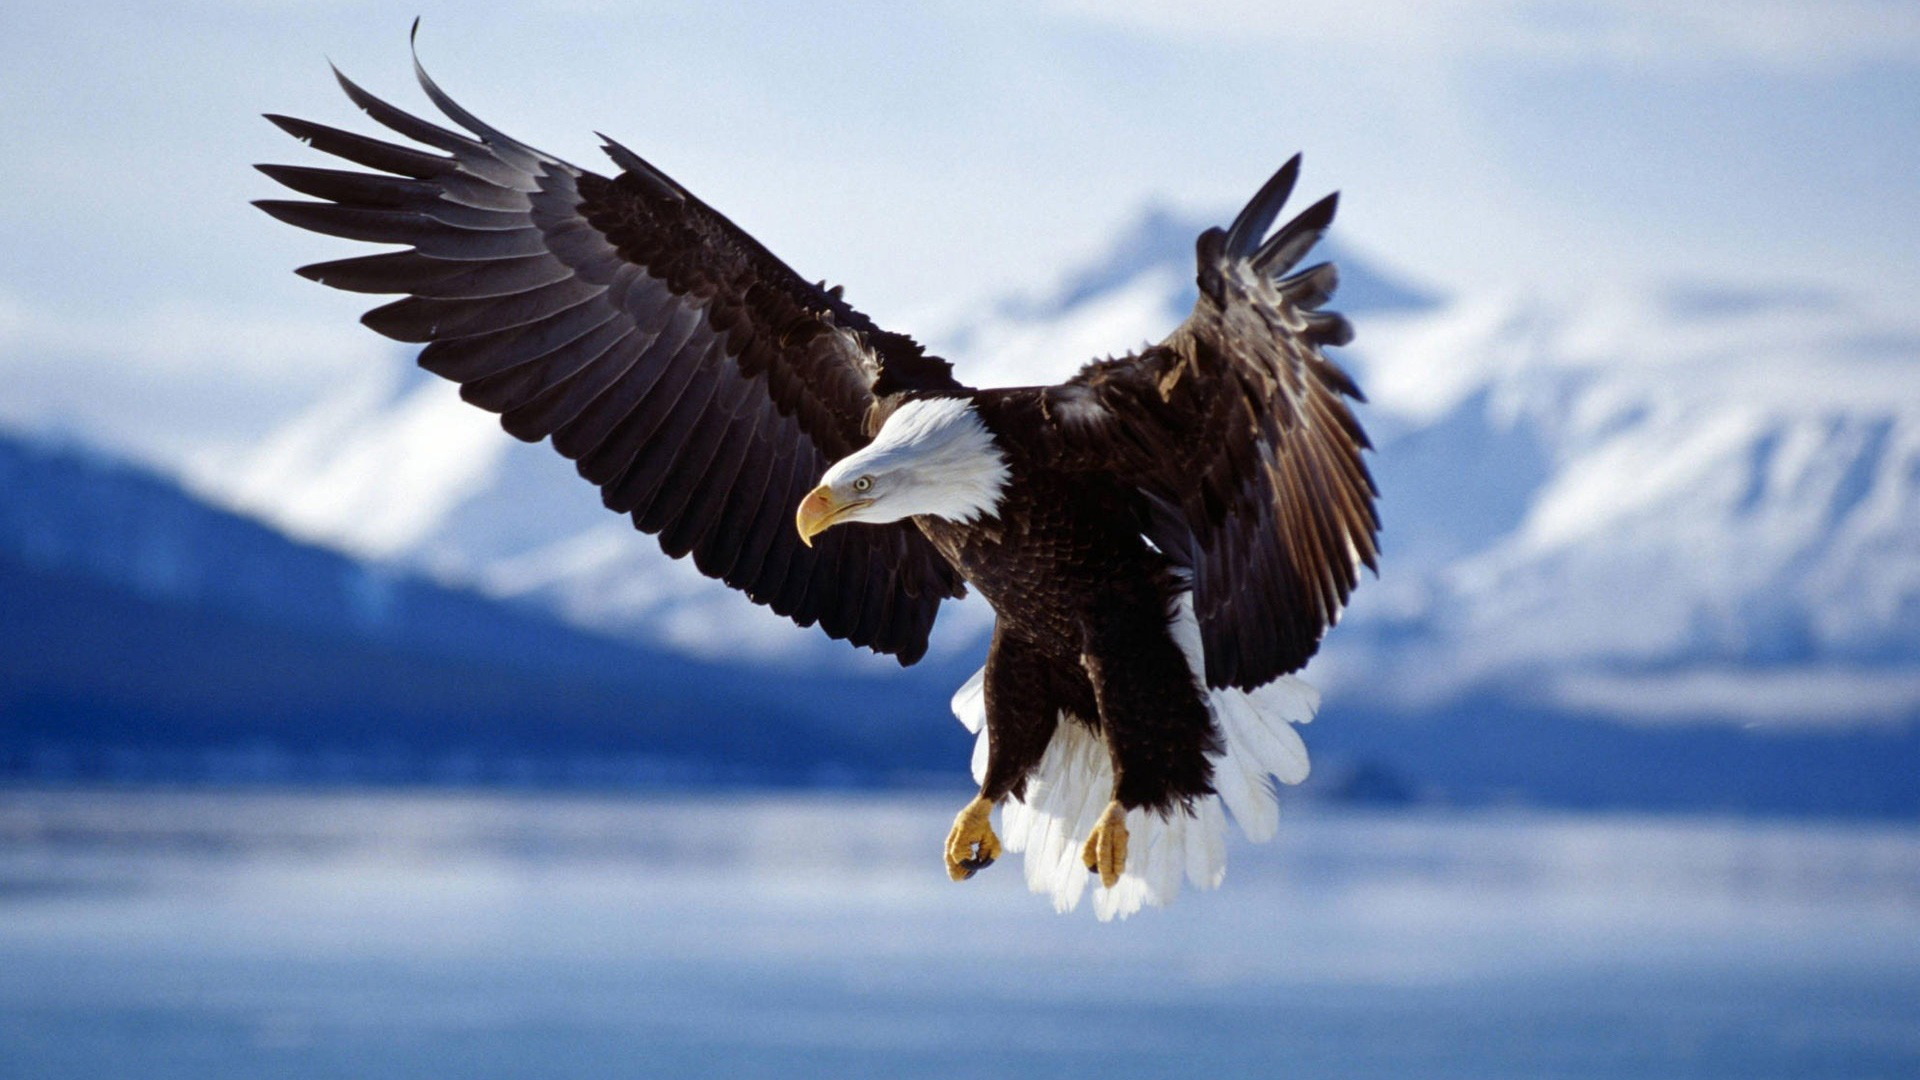 Eagle-in-Fight-1920x1080-wallpaper-wp36012039